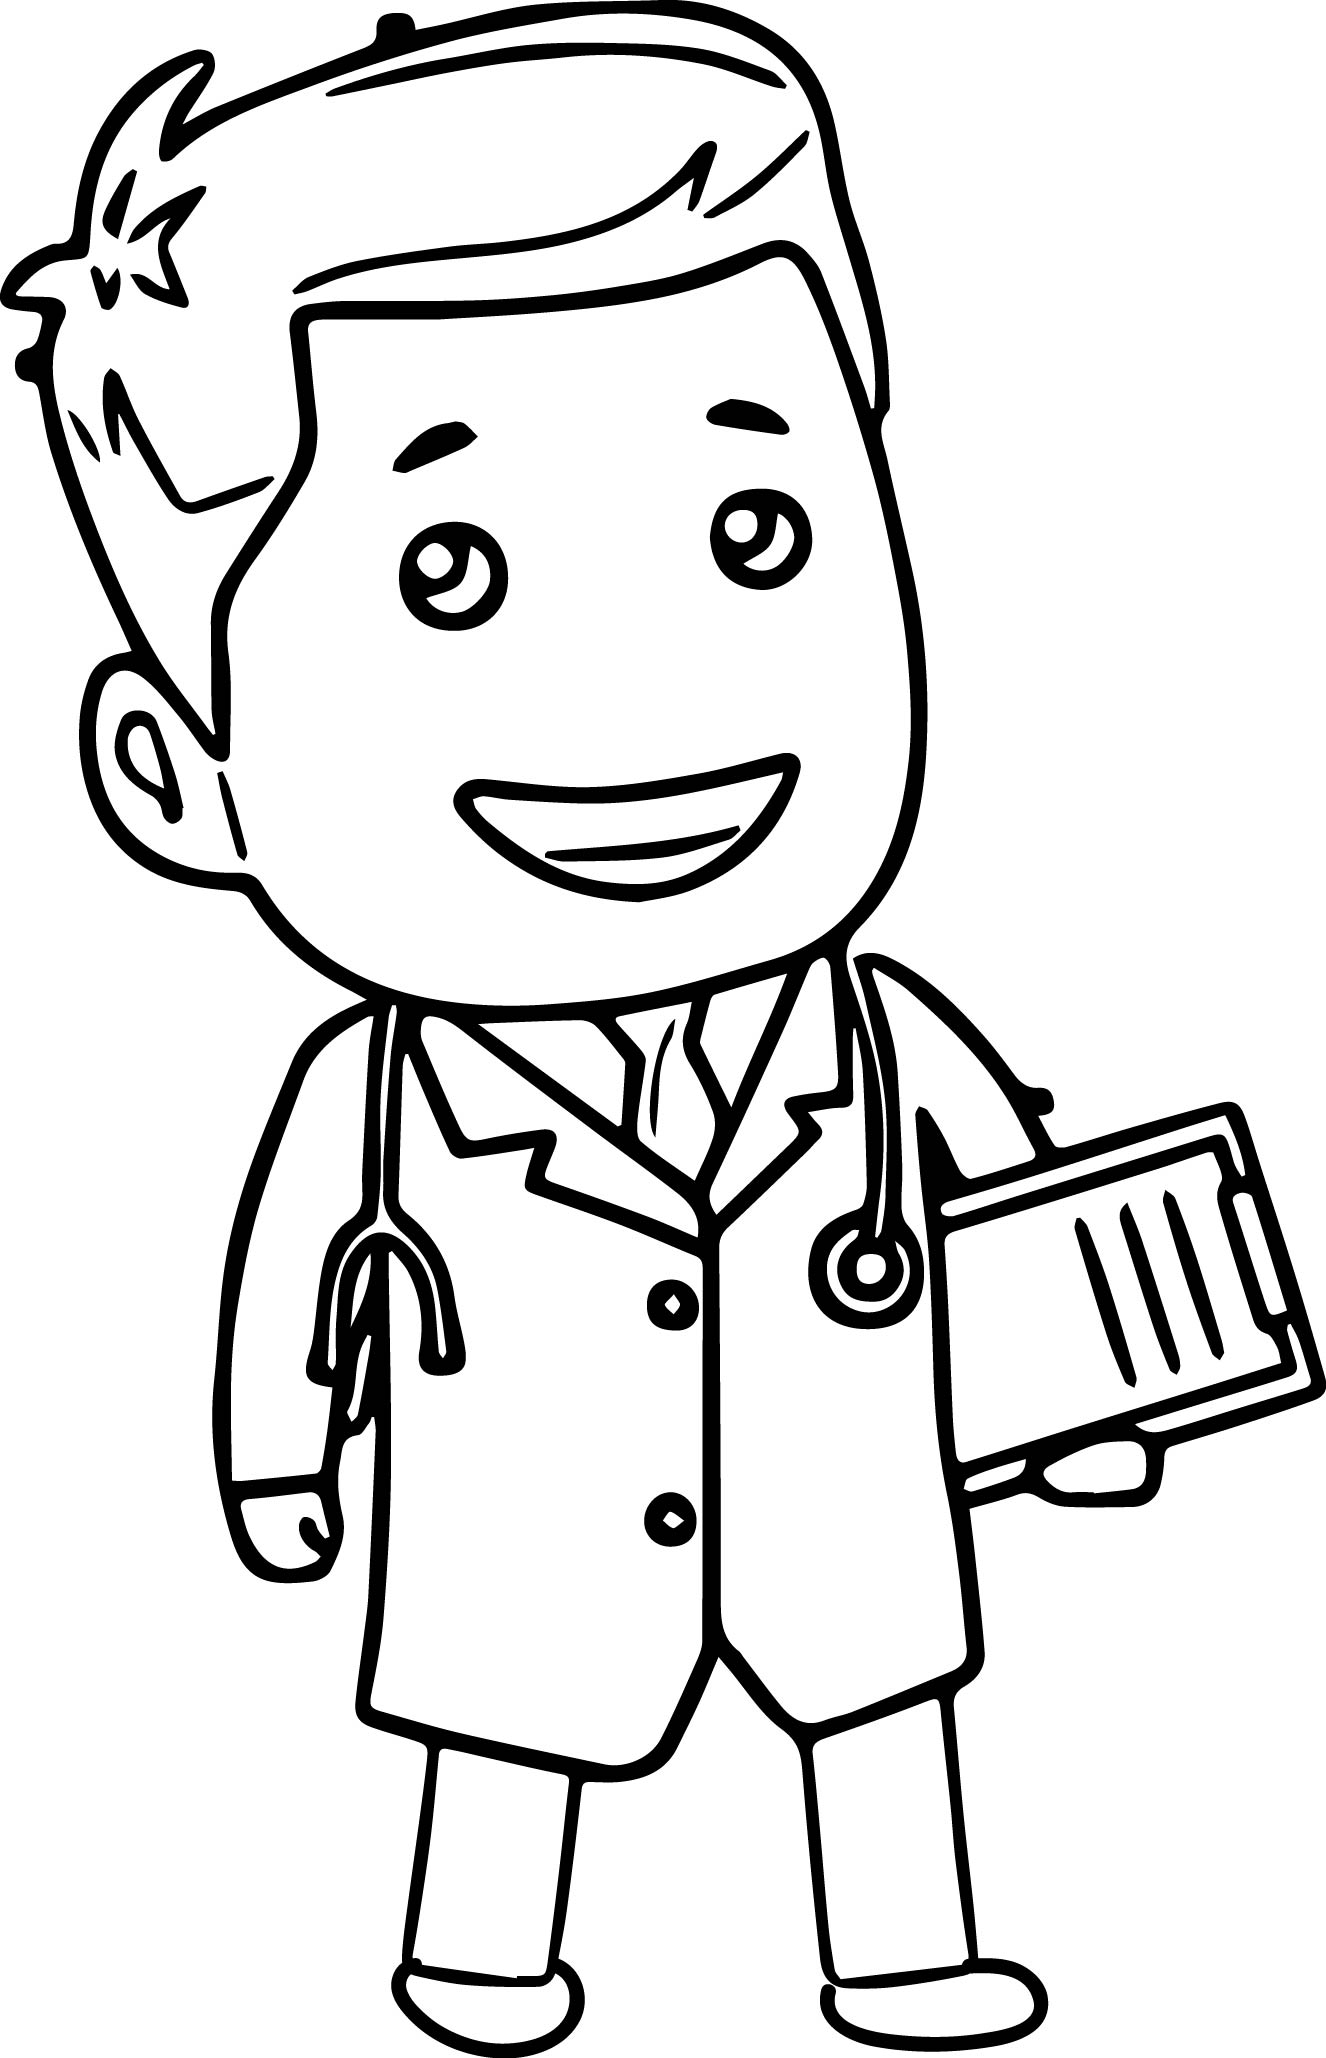 colouring pages of doctor doctor drawing pictures at getdrawings free download colouring of doctor pages